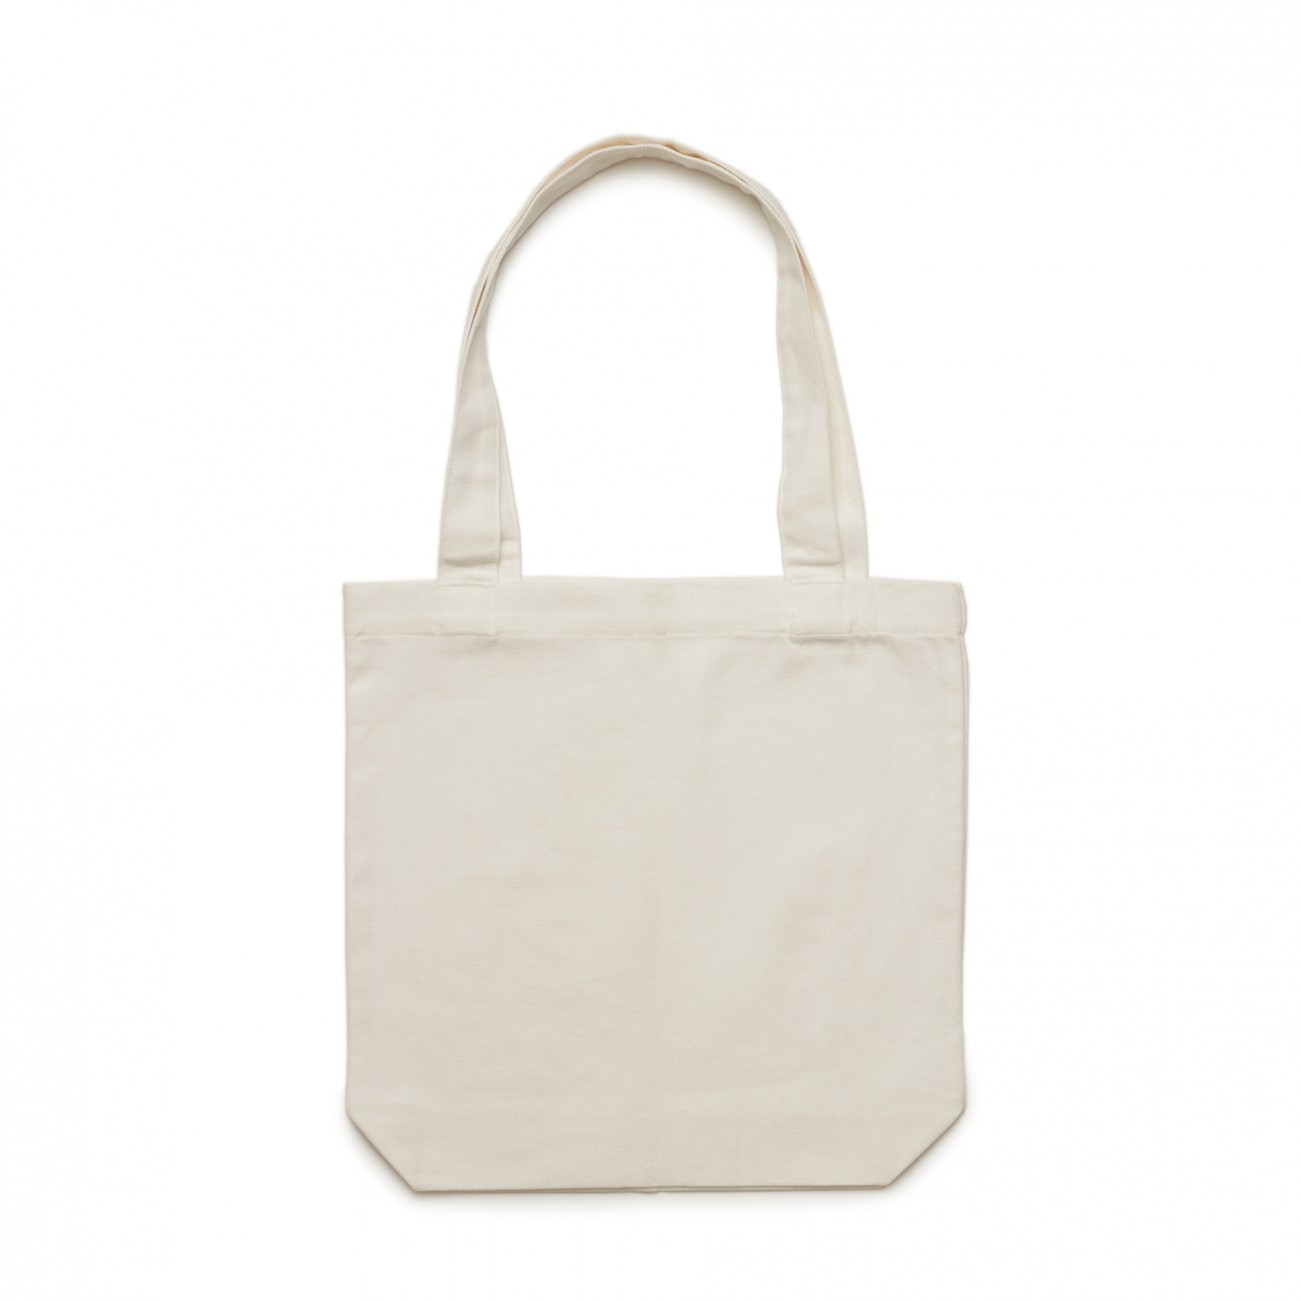 1001_carrie_bag_cream_4.jpg